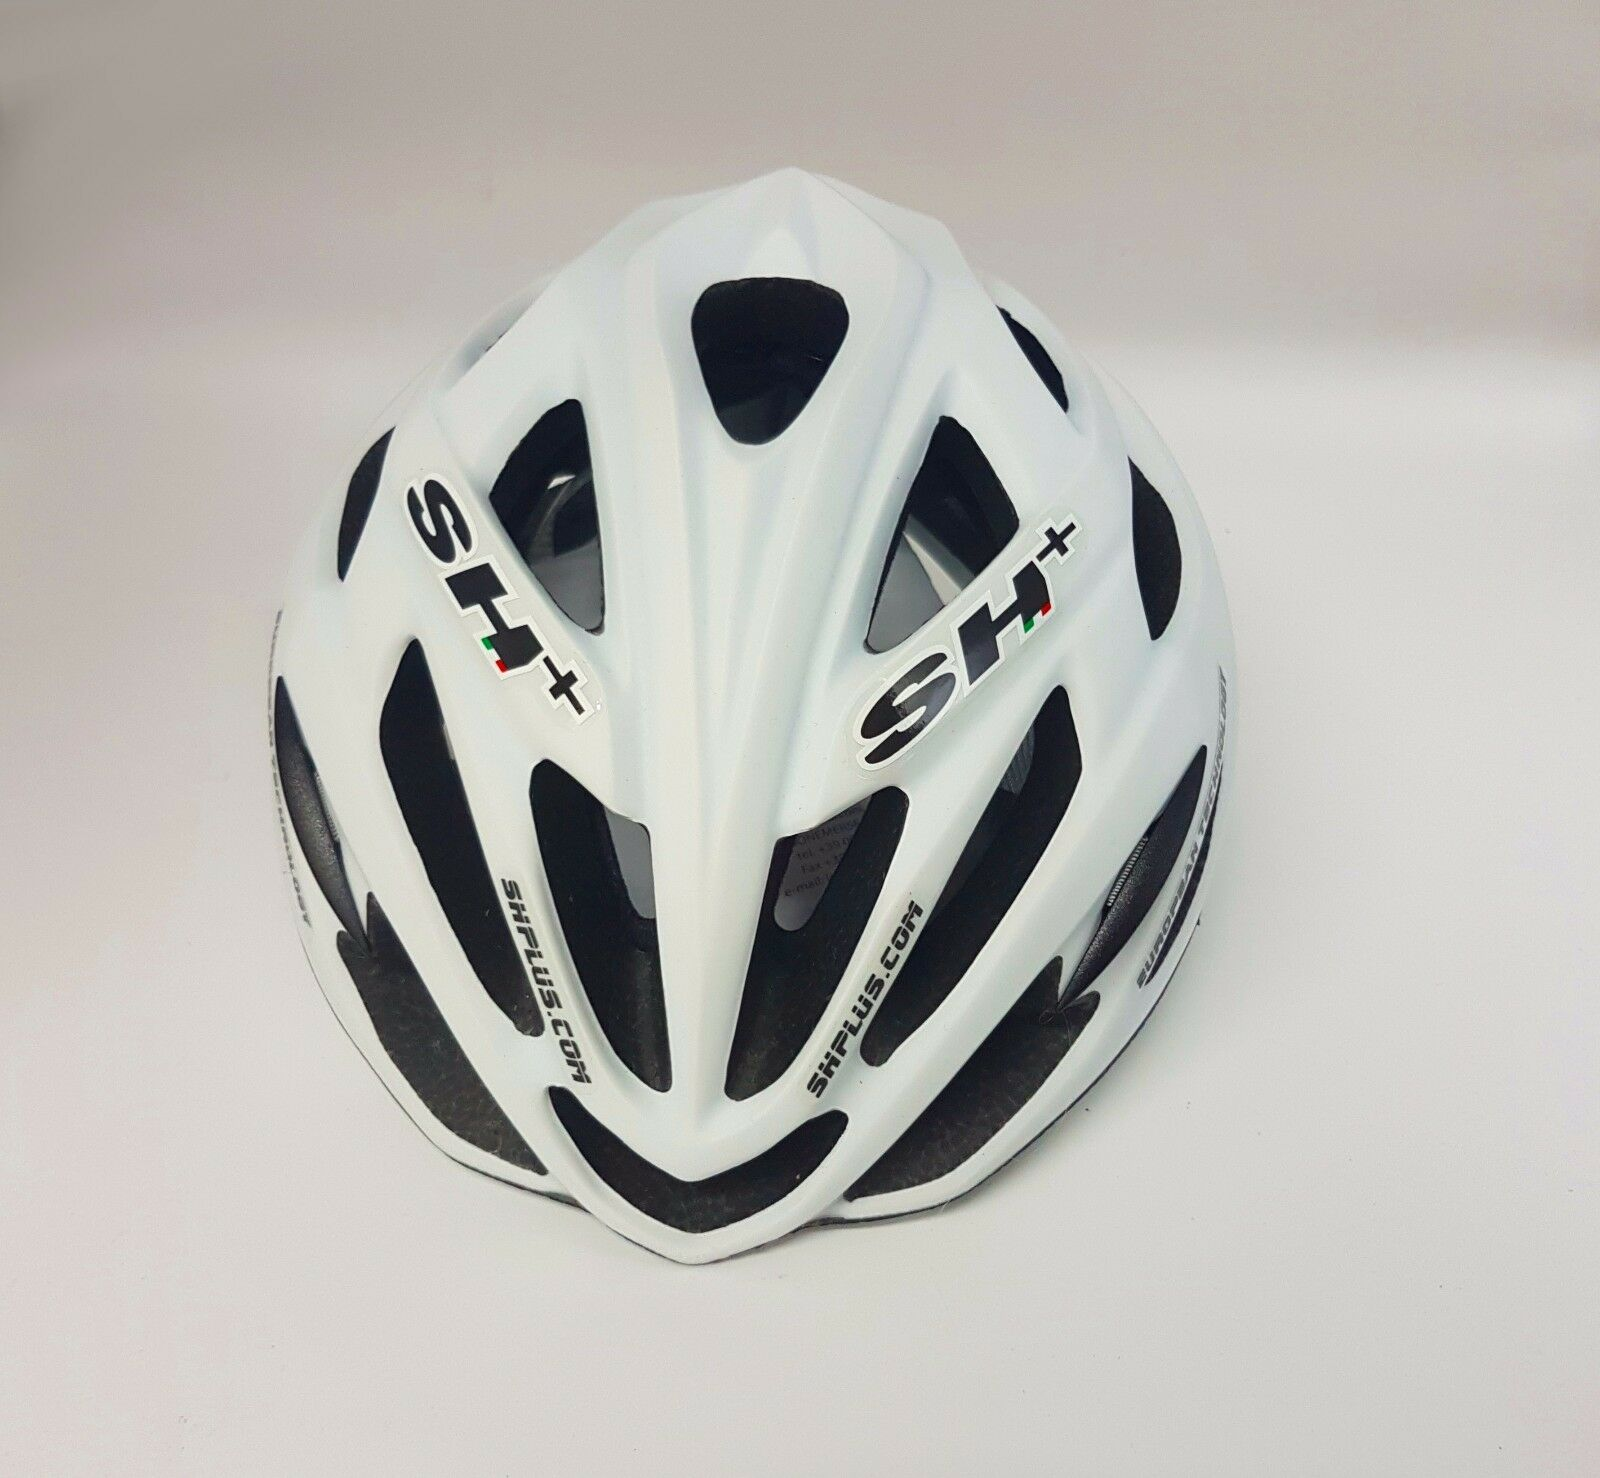 SH+  Shabli  Safety Road Cycling Bicycle Helmet Matt  White 55-60cm  at the lowest price